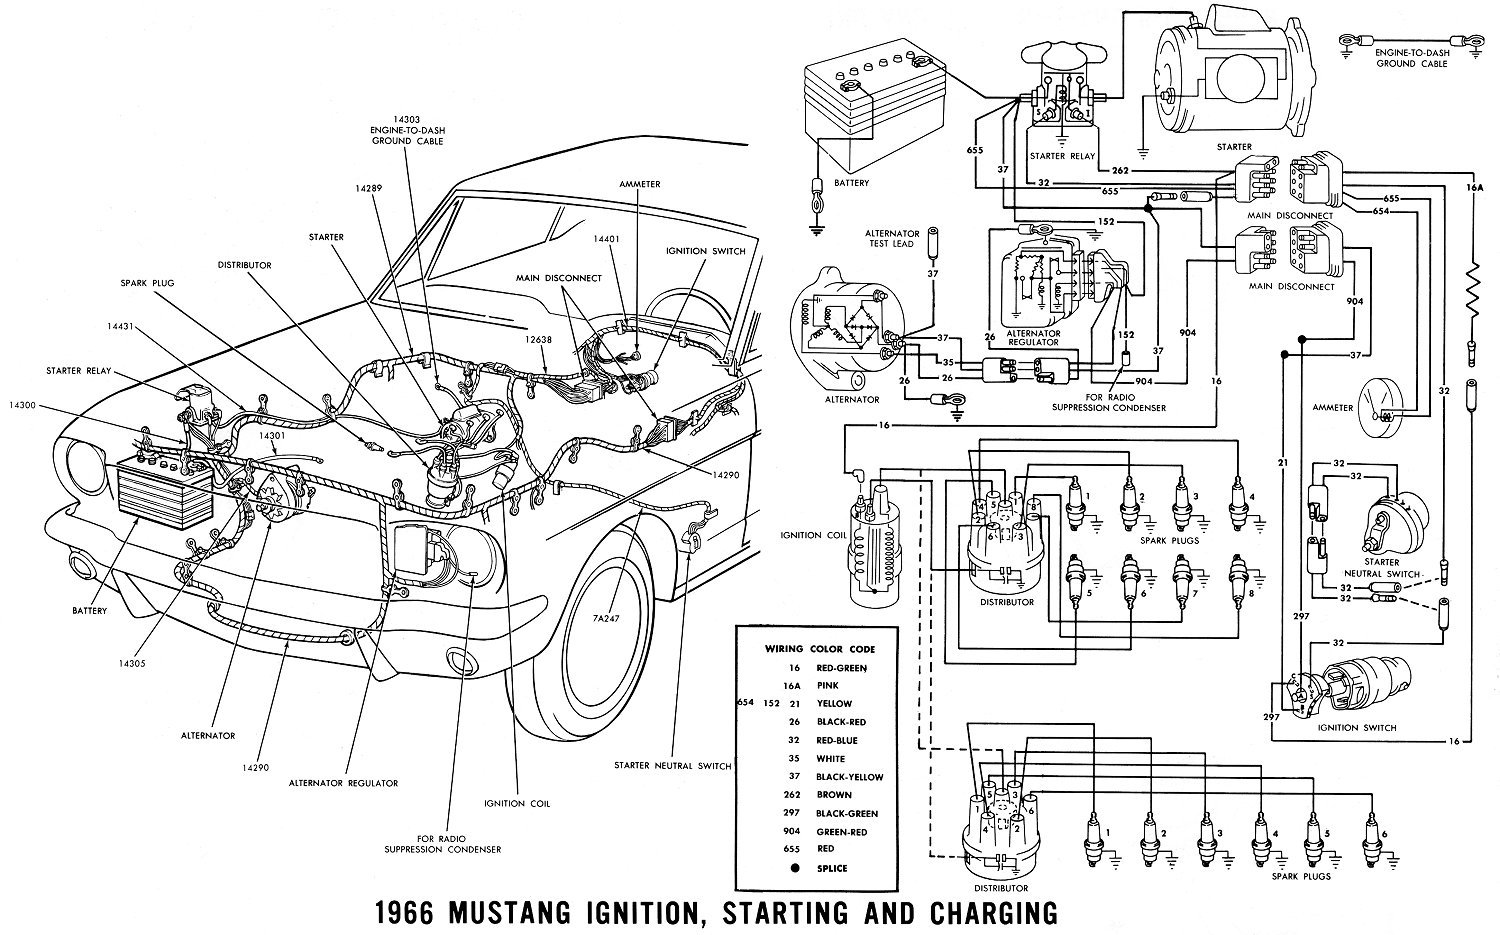 44F together with Differential moreover Schematics d additionally Schematics a additionally Chevy Front End Parts Diagram. on dana 60 parts diagram